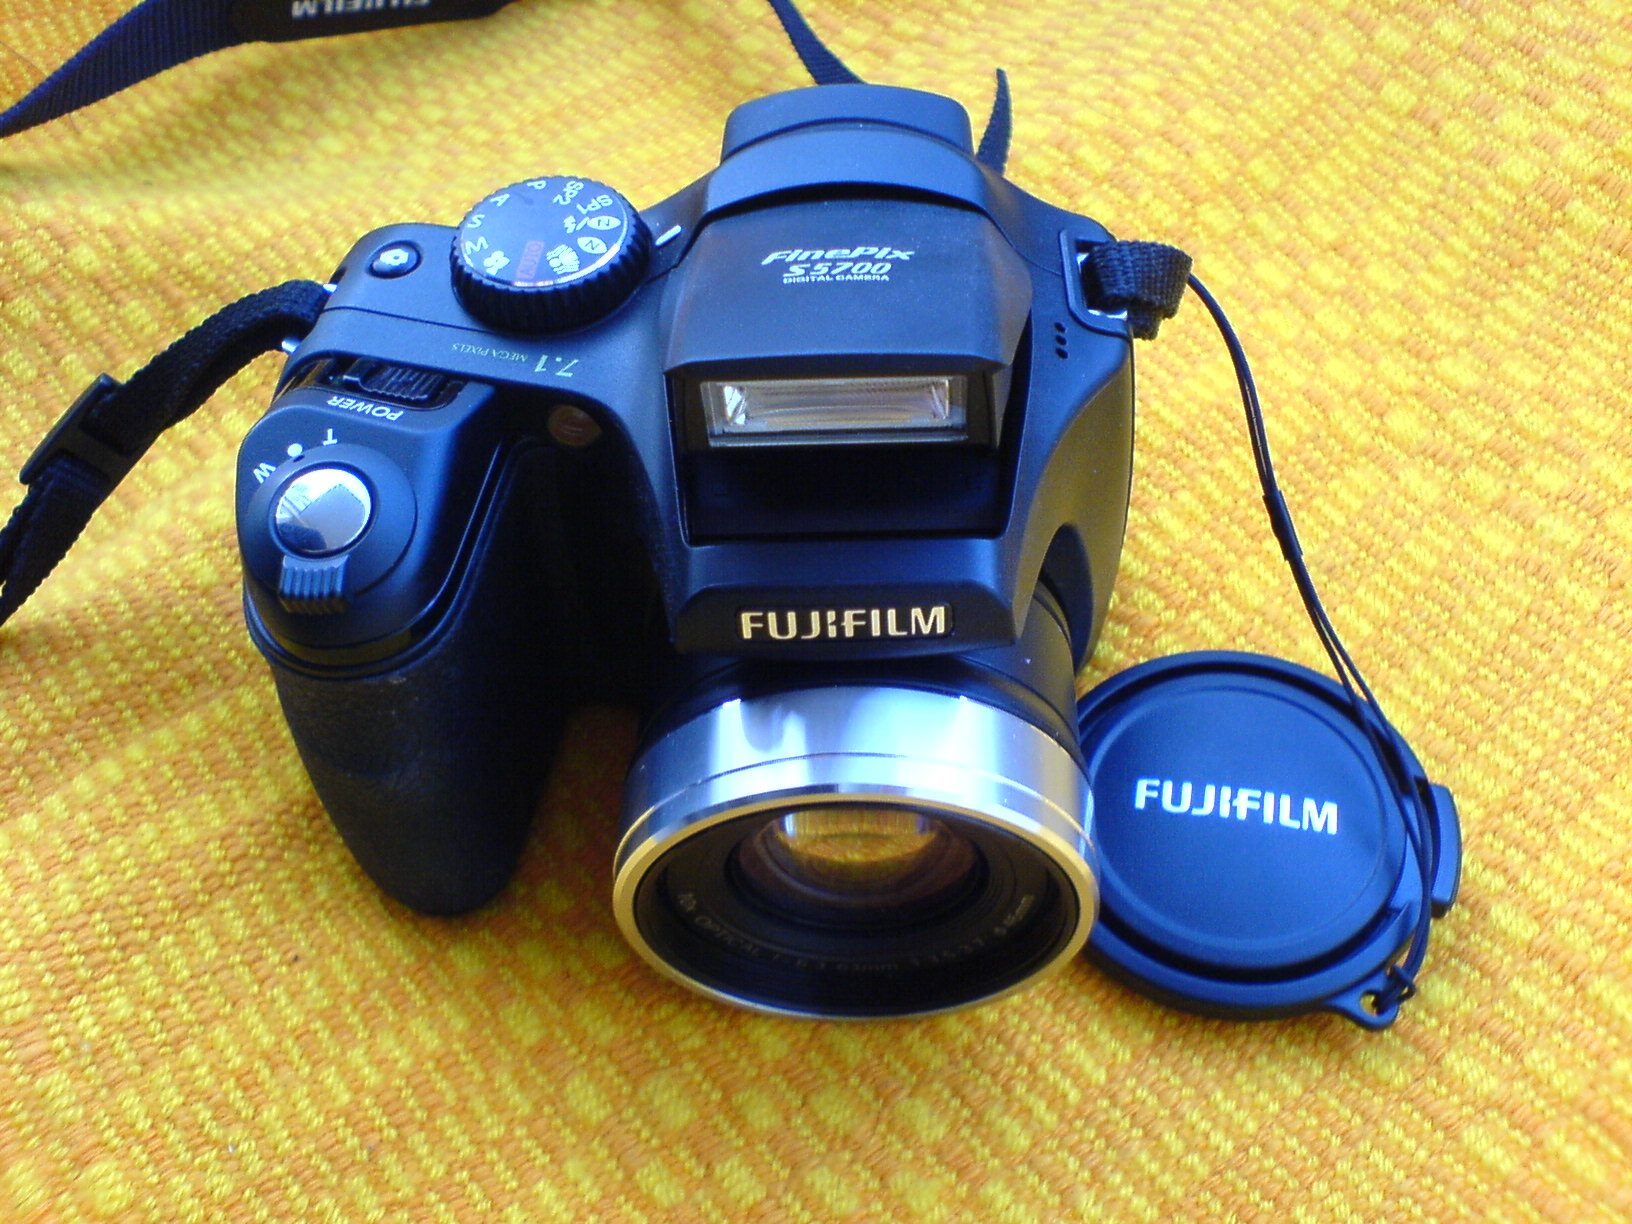 FUJIFILM FINEPIX S5700 DRIVERS DOWNLOAD FREE